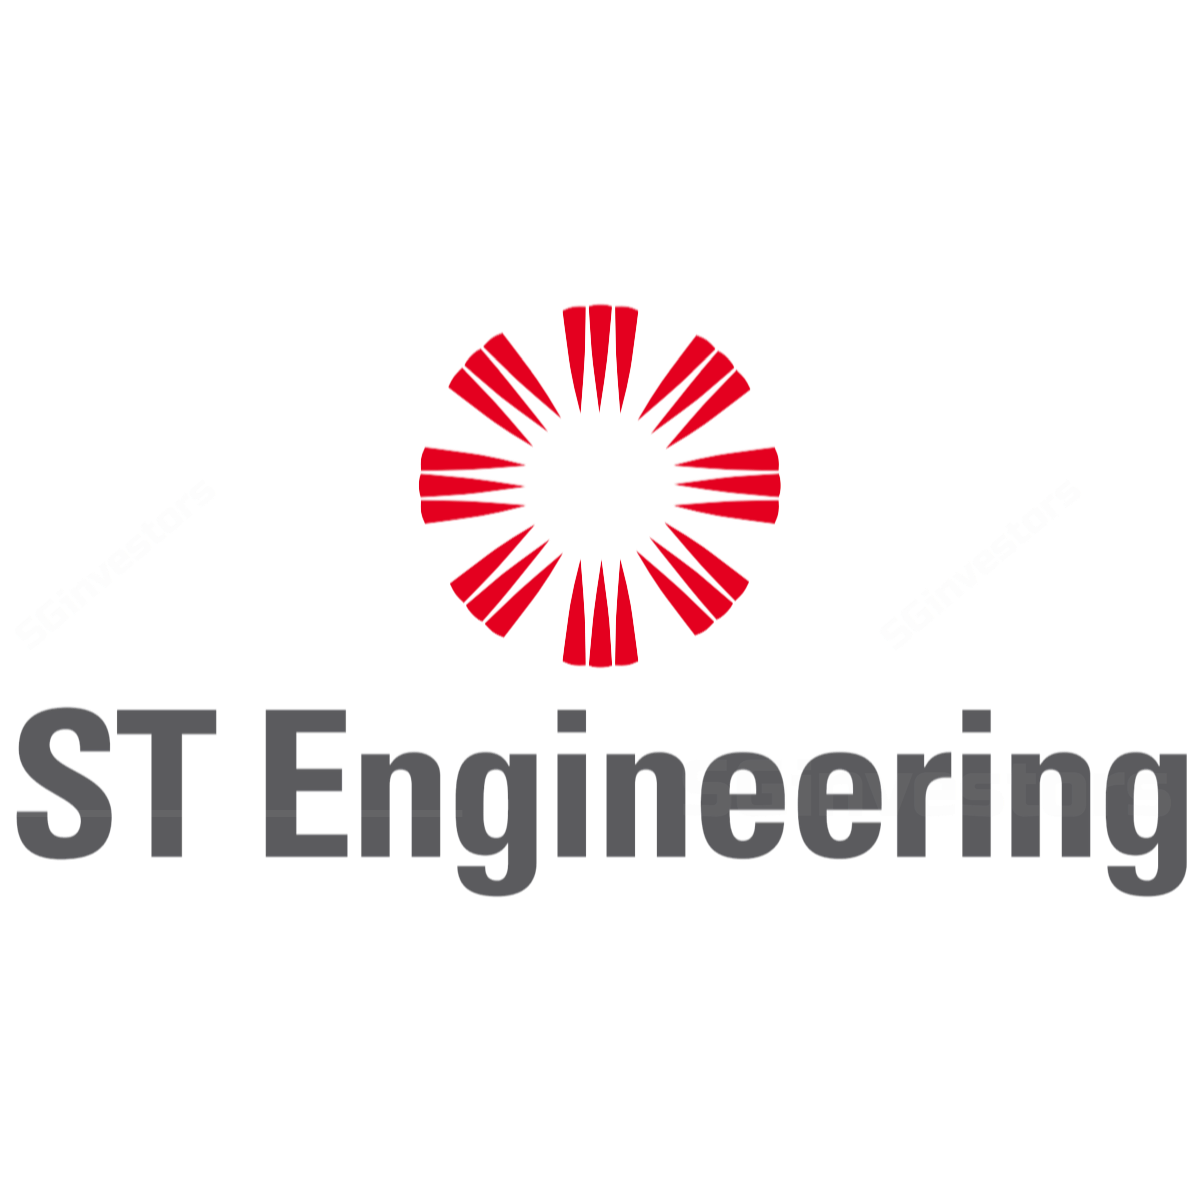 ST Engineering - CGS-CIMB Research 2018-09-01: Longer-lasting Engine Upcycle